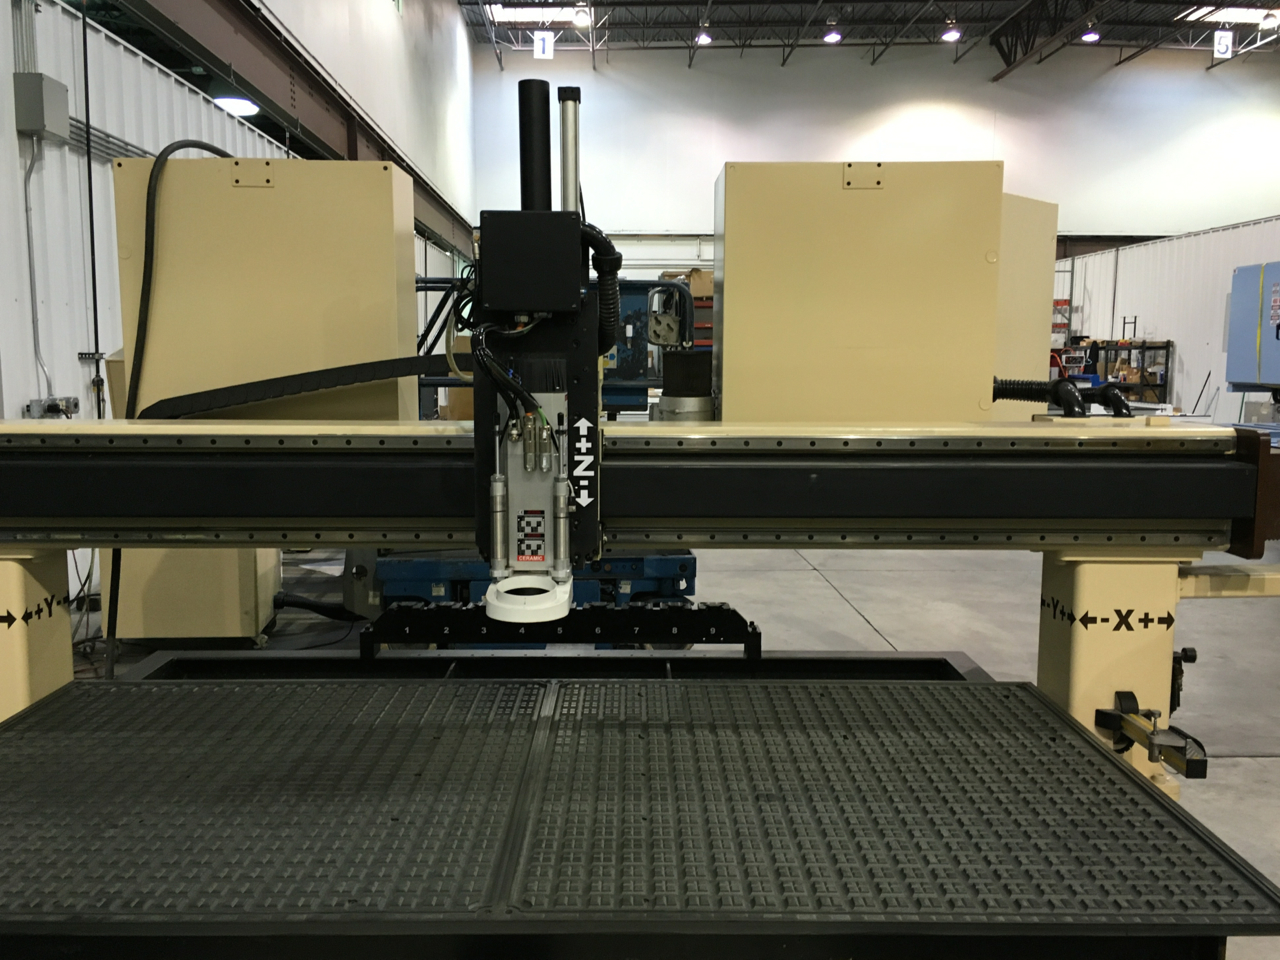 Refurbished Motionmaster 3 axis CNC router